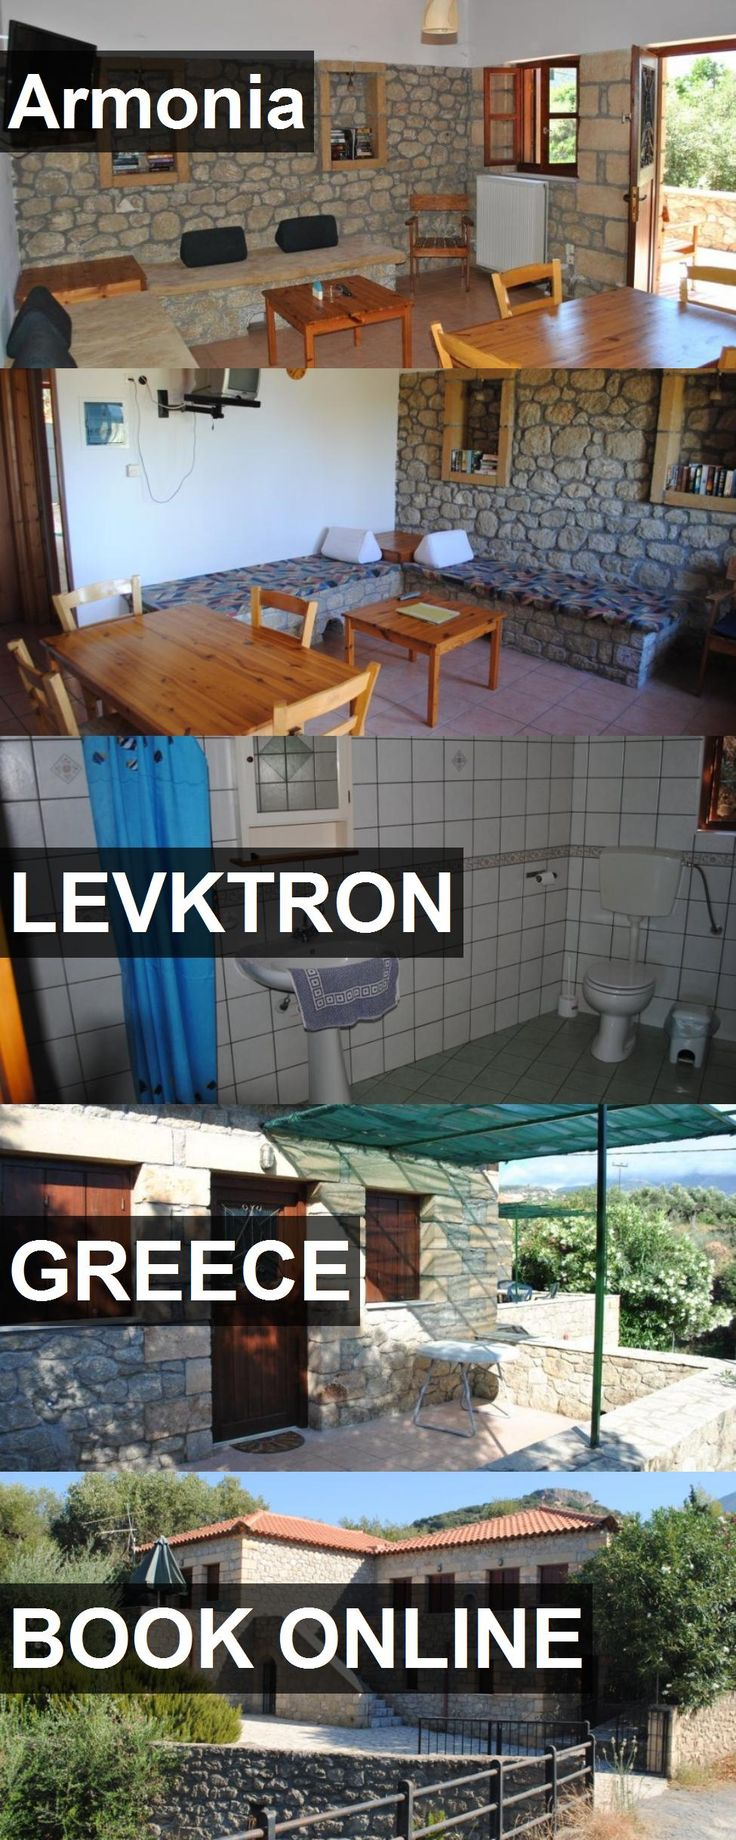 Hotel Armonia in Levktron, Greece. For more information, photos, reviews and best prices please follow the link. #Greece #Levktron #travel #vacation #hotel